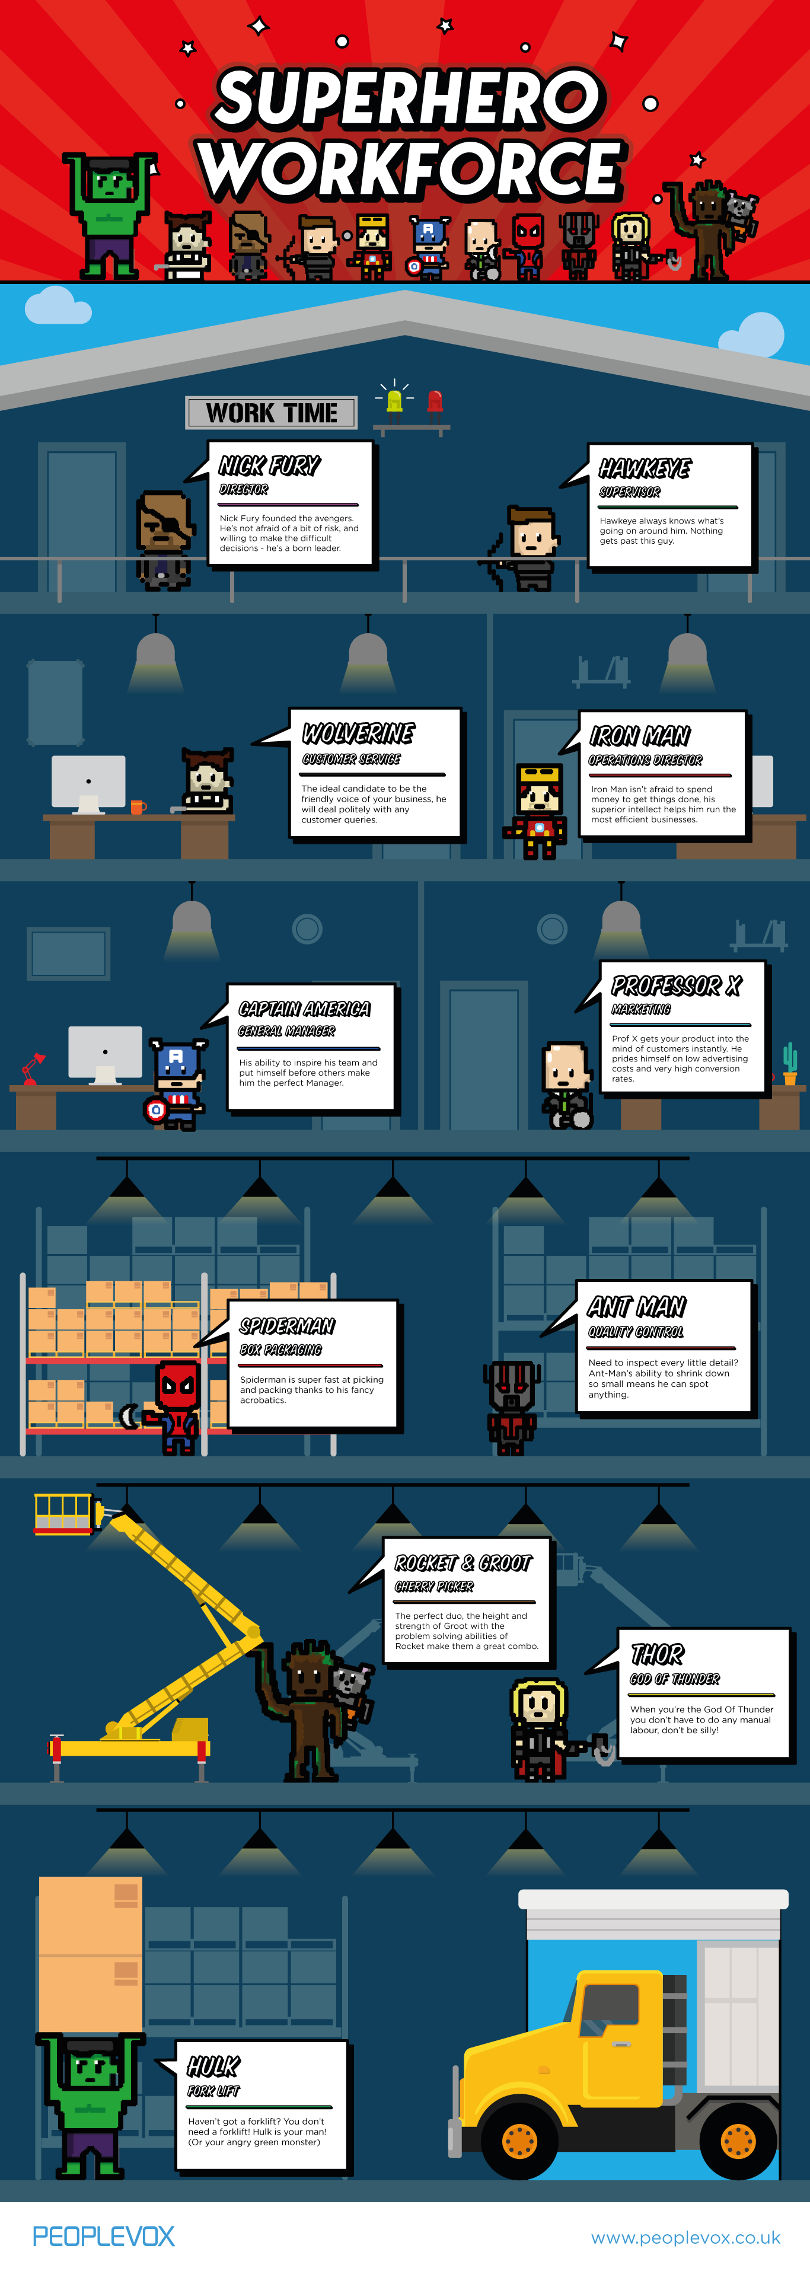 Superhero Workforce infographic